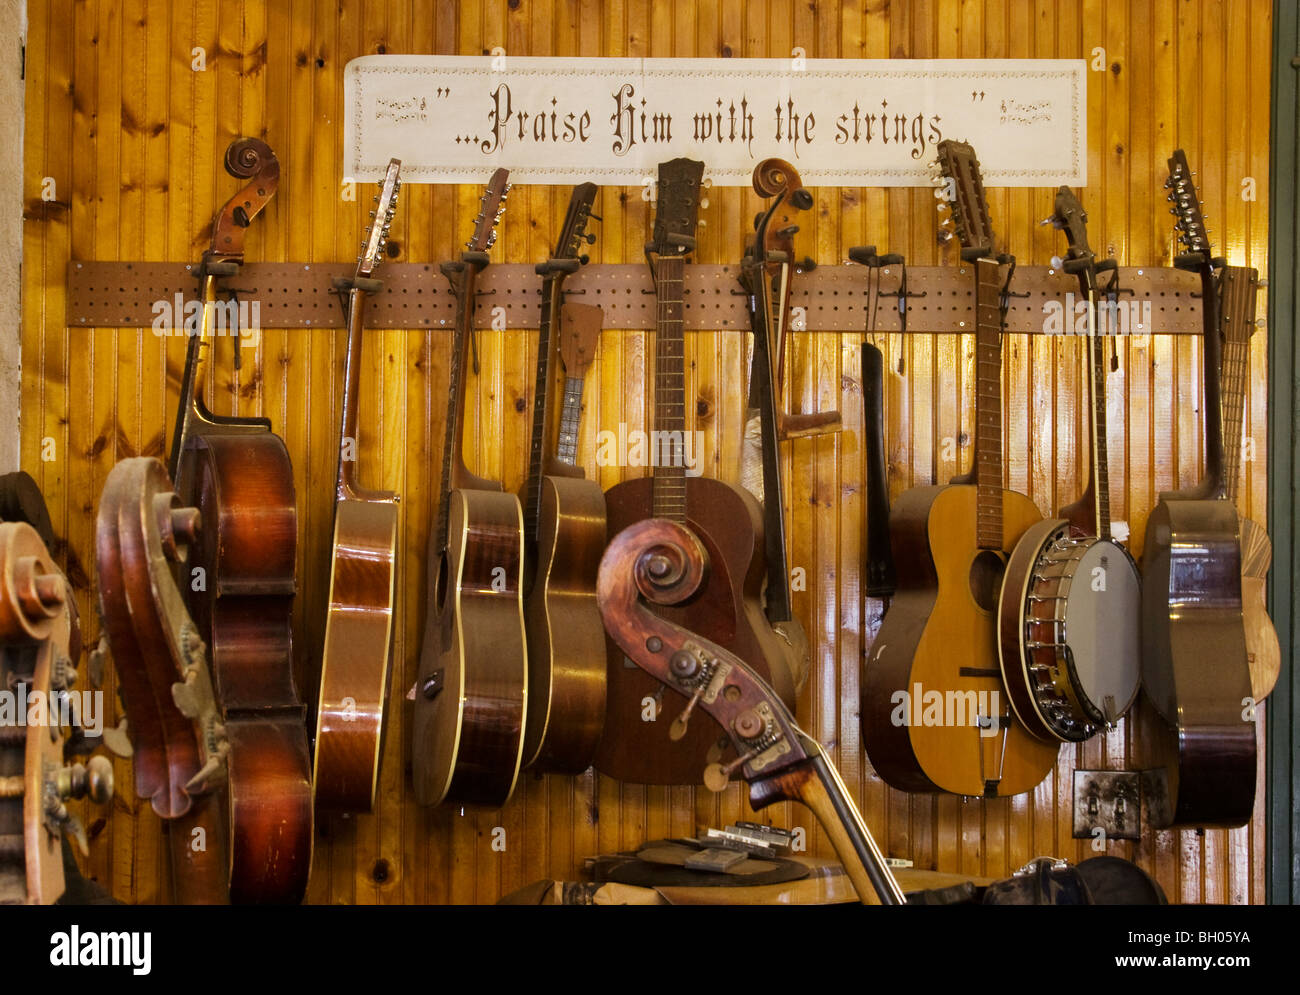 Stringed instruments lined up for repair in a luthier's shop. - Stock Image